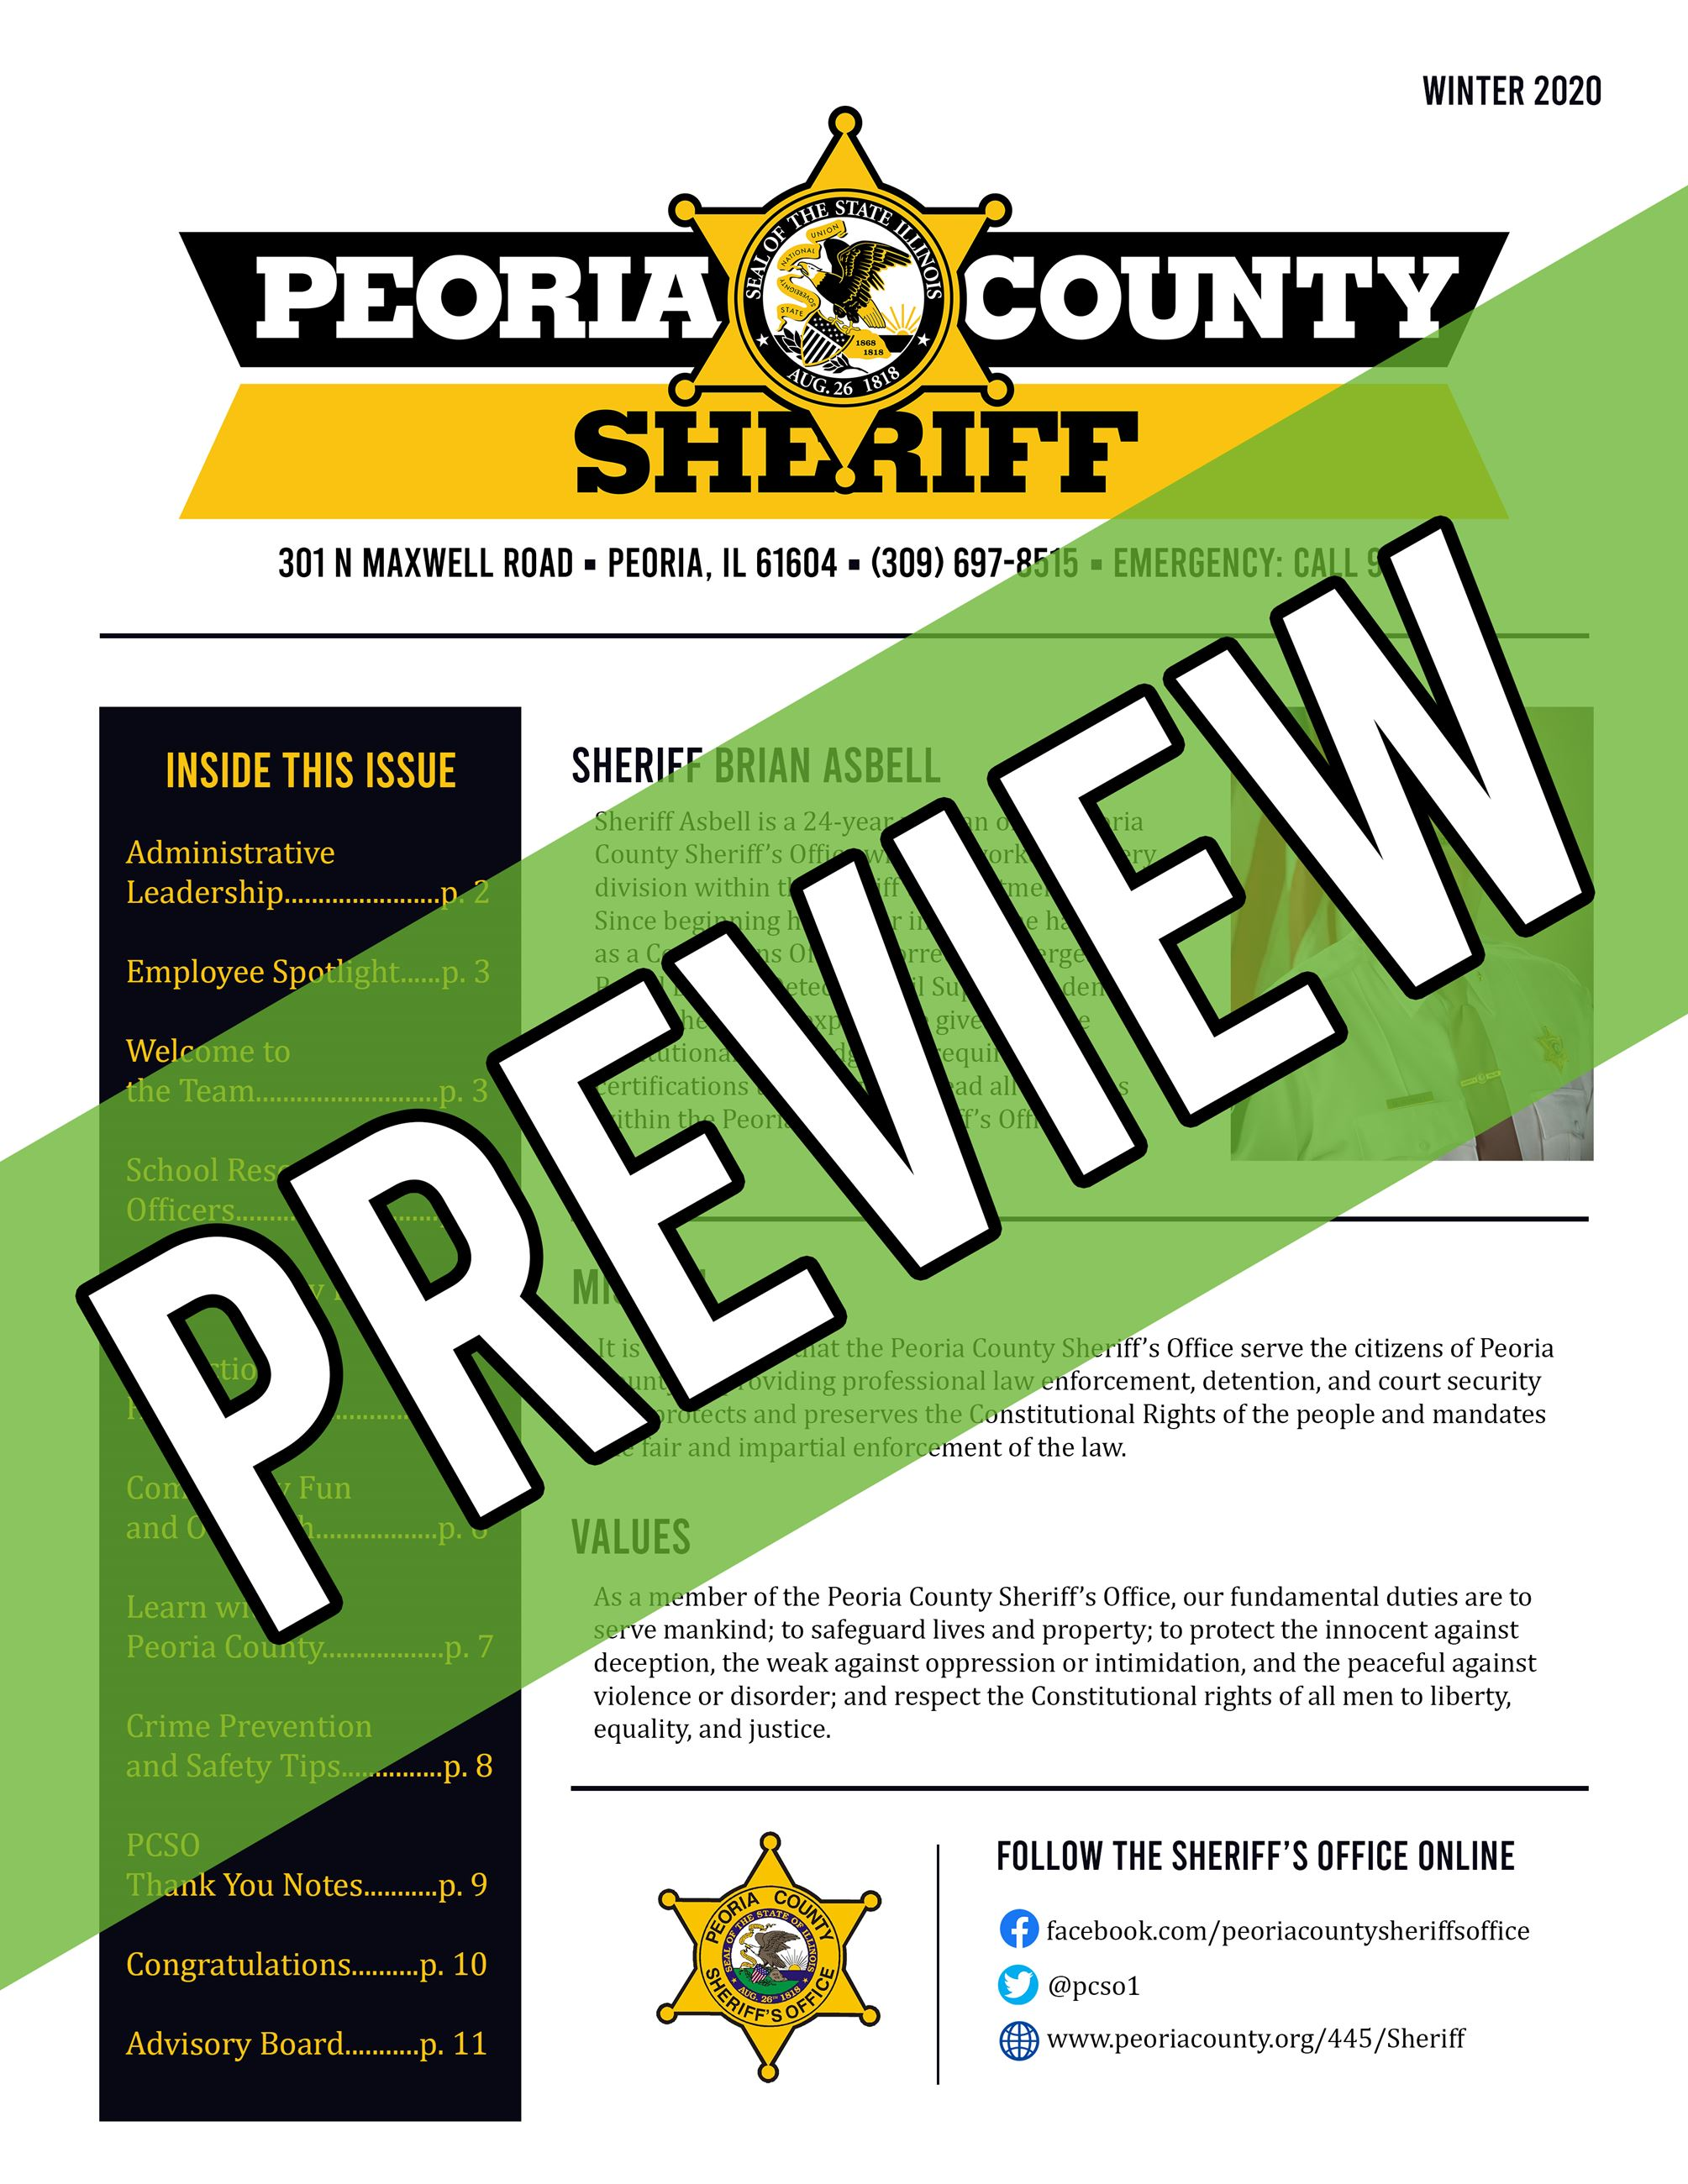 Winter 2020 PCSO newsletter - page 1 with preview written across front